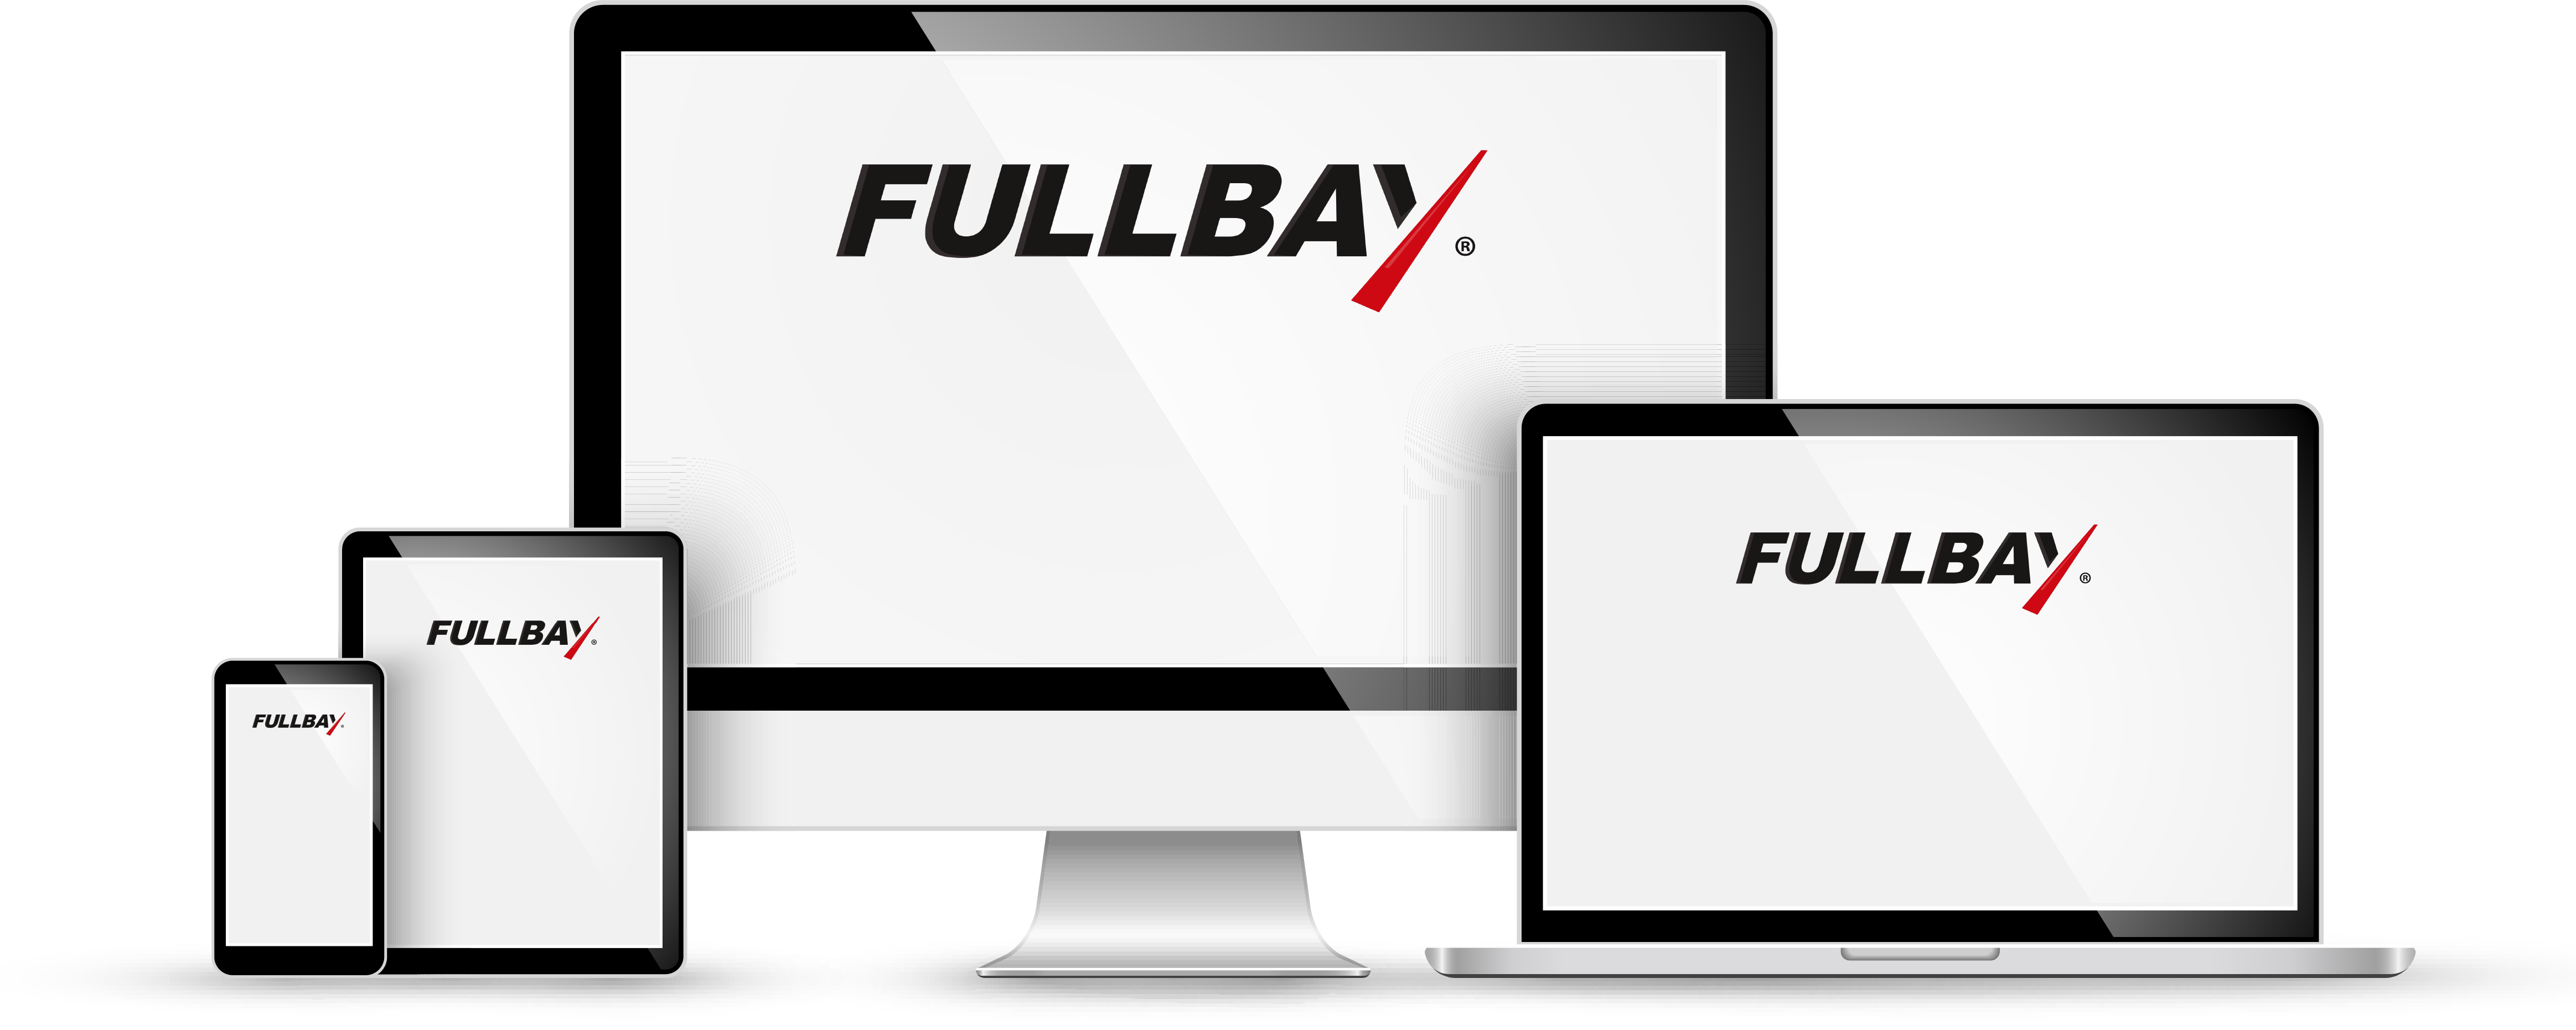 Fullbay screenshot: Hosted and deployed within the cloud, Fullbay is accessible on any internet-enabled device including mobile, tablet, desktop or laptop